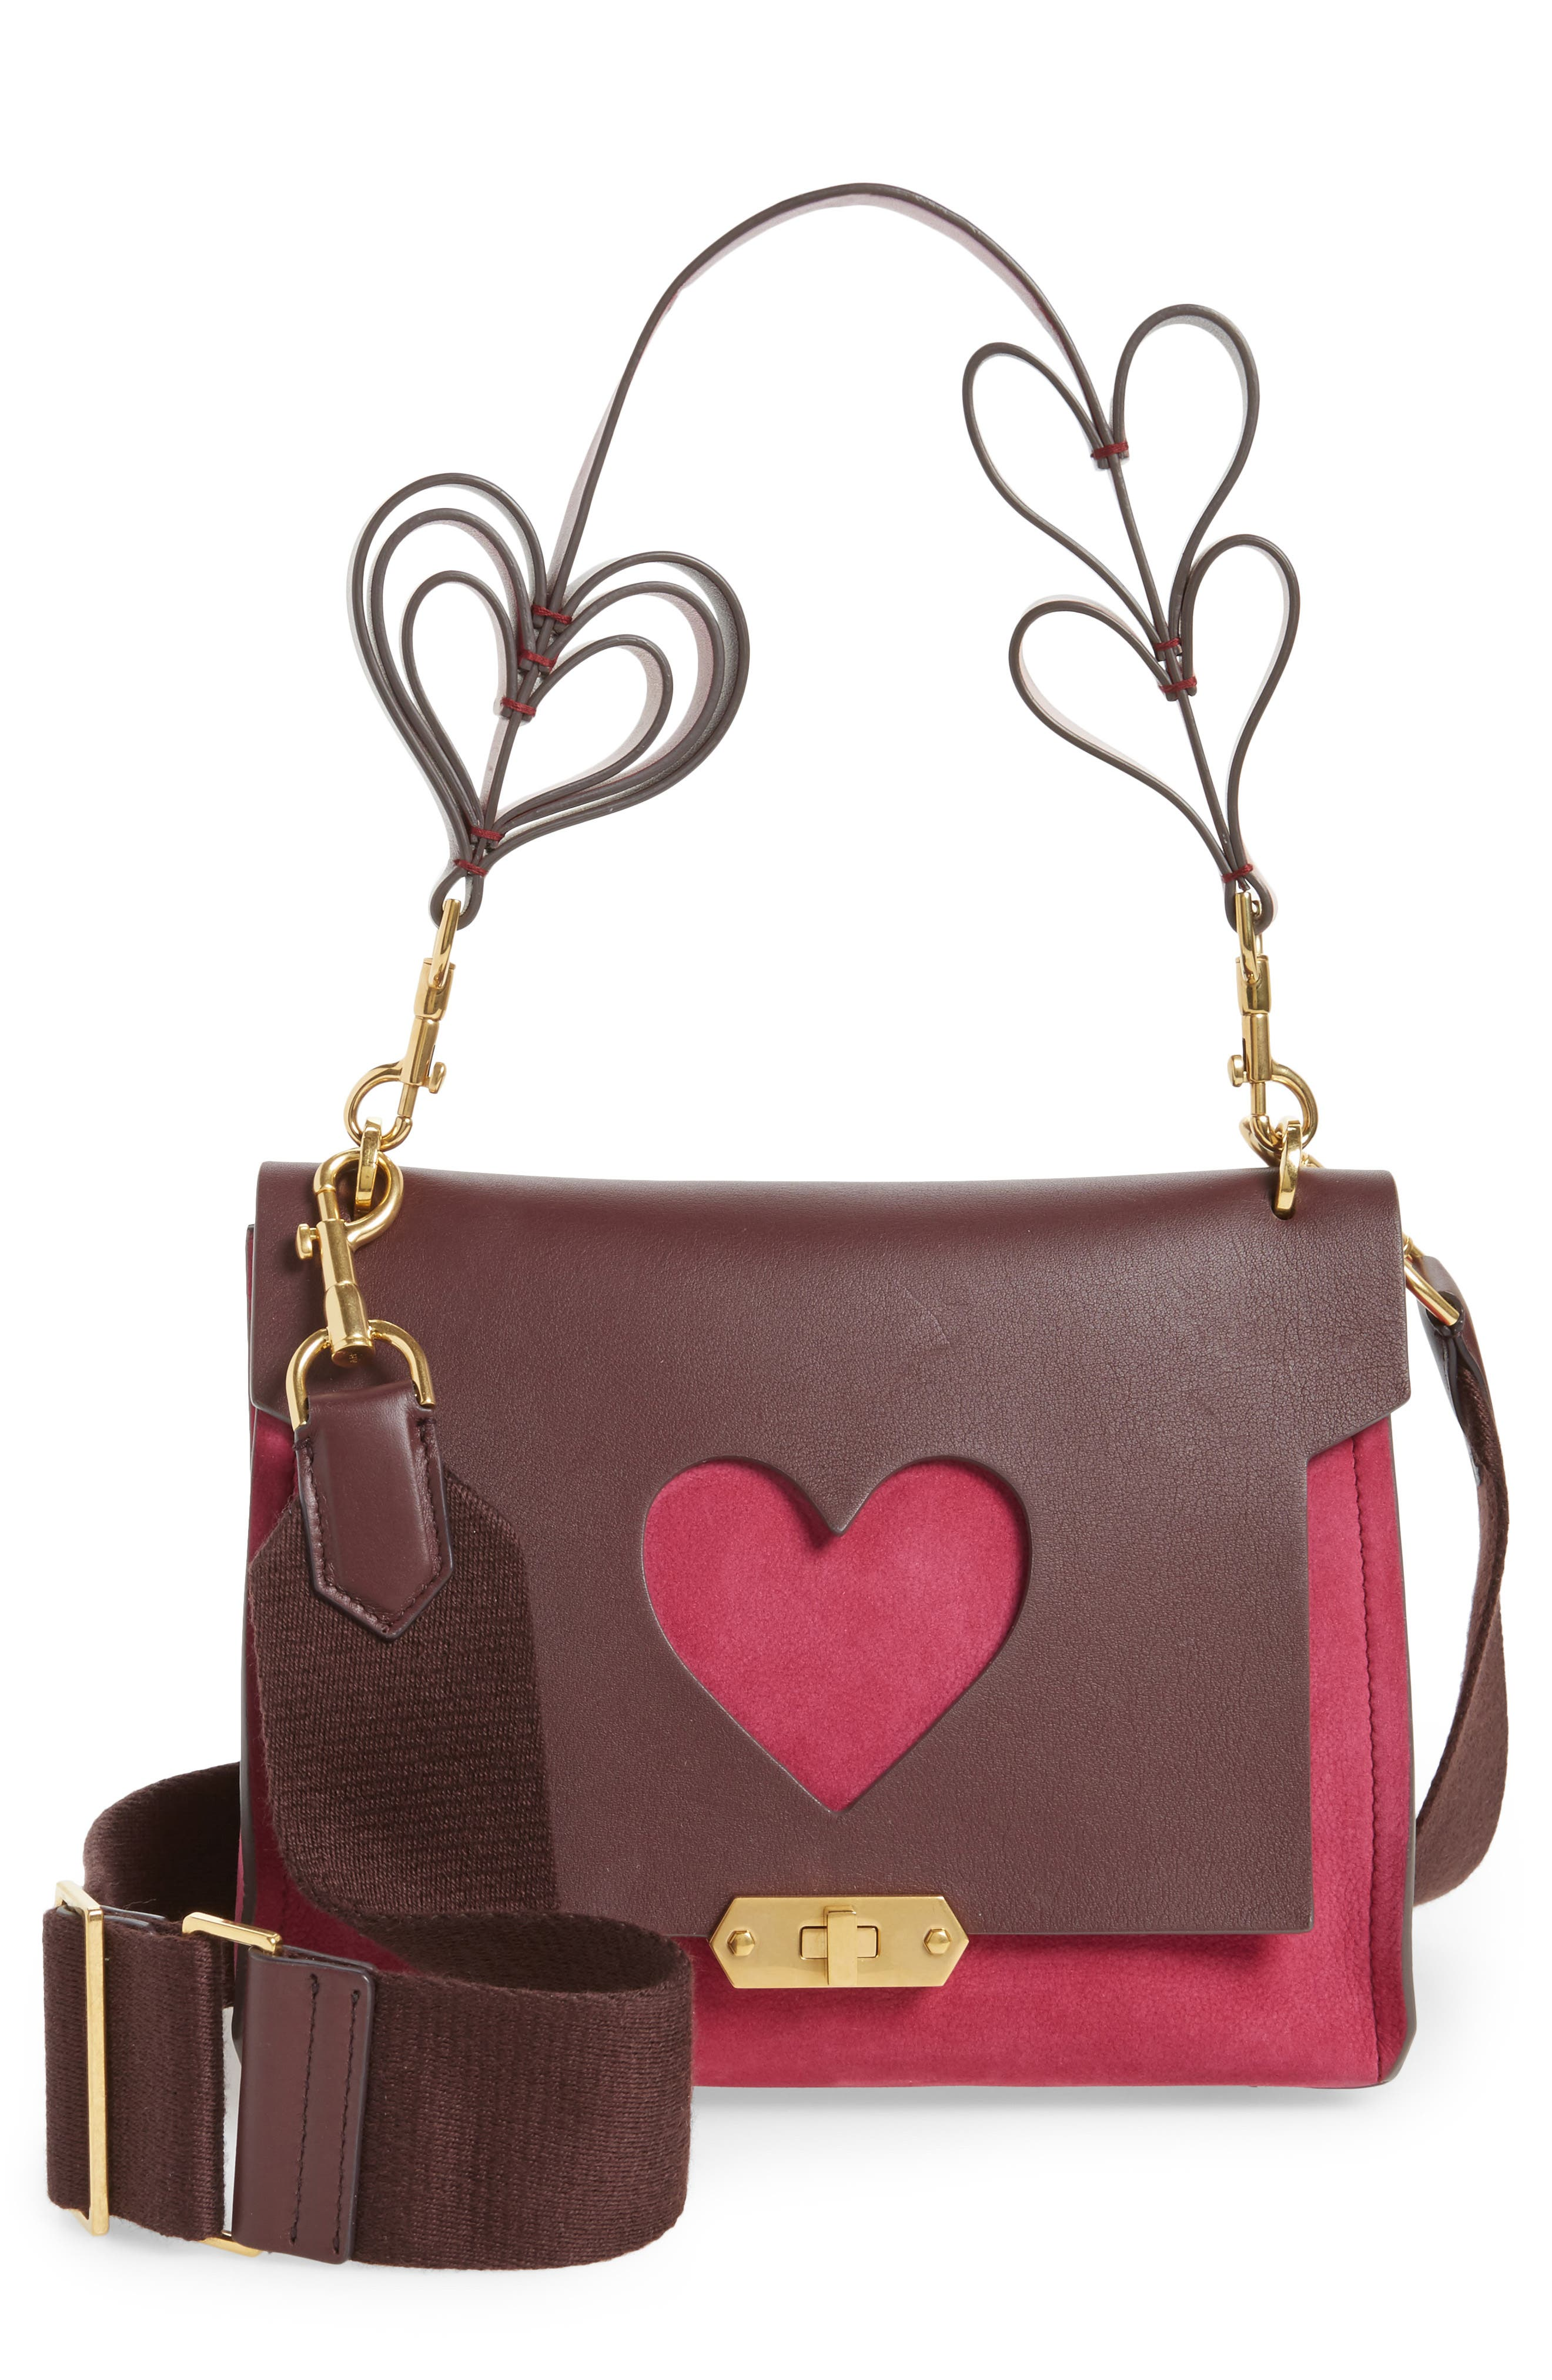 Extra Small Bathhurst Heart Leather Shoulder Bag,                         Main,                         color, 650